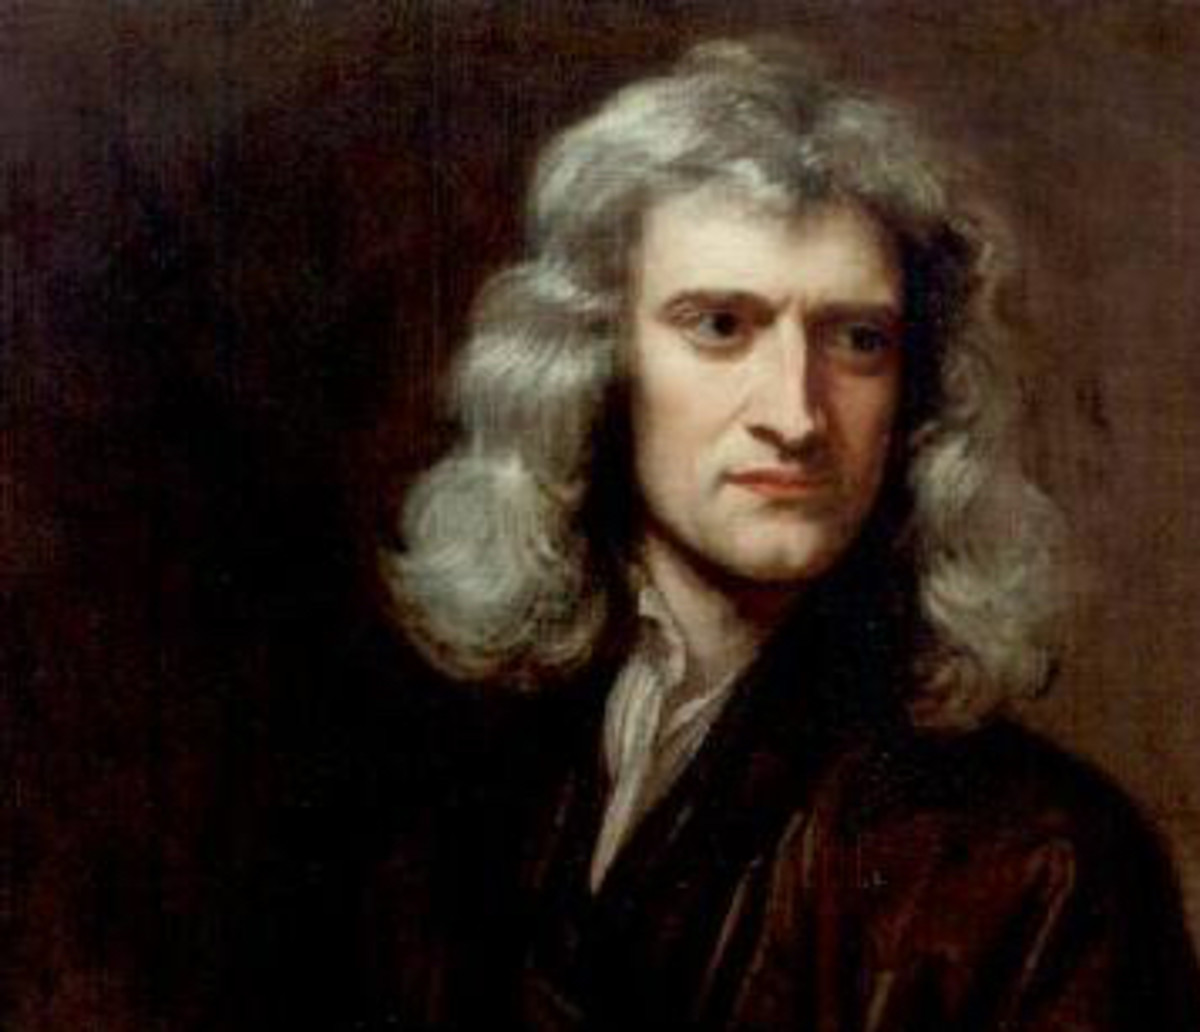 a biography of isaac newton the mathematical genius When asked how he formulated his ideas on universal gravitation, isaac newton simply replied: 'by thinking on it continually' on an entirely different occasion, when the marquis de l'hospital first perused of a copy of newton's 'principia', he expressed his astonishment at its remarkable contents by asking: 'does newton eat and .